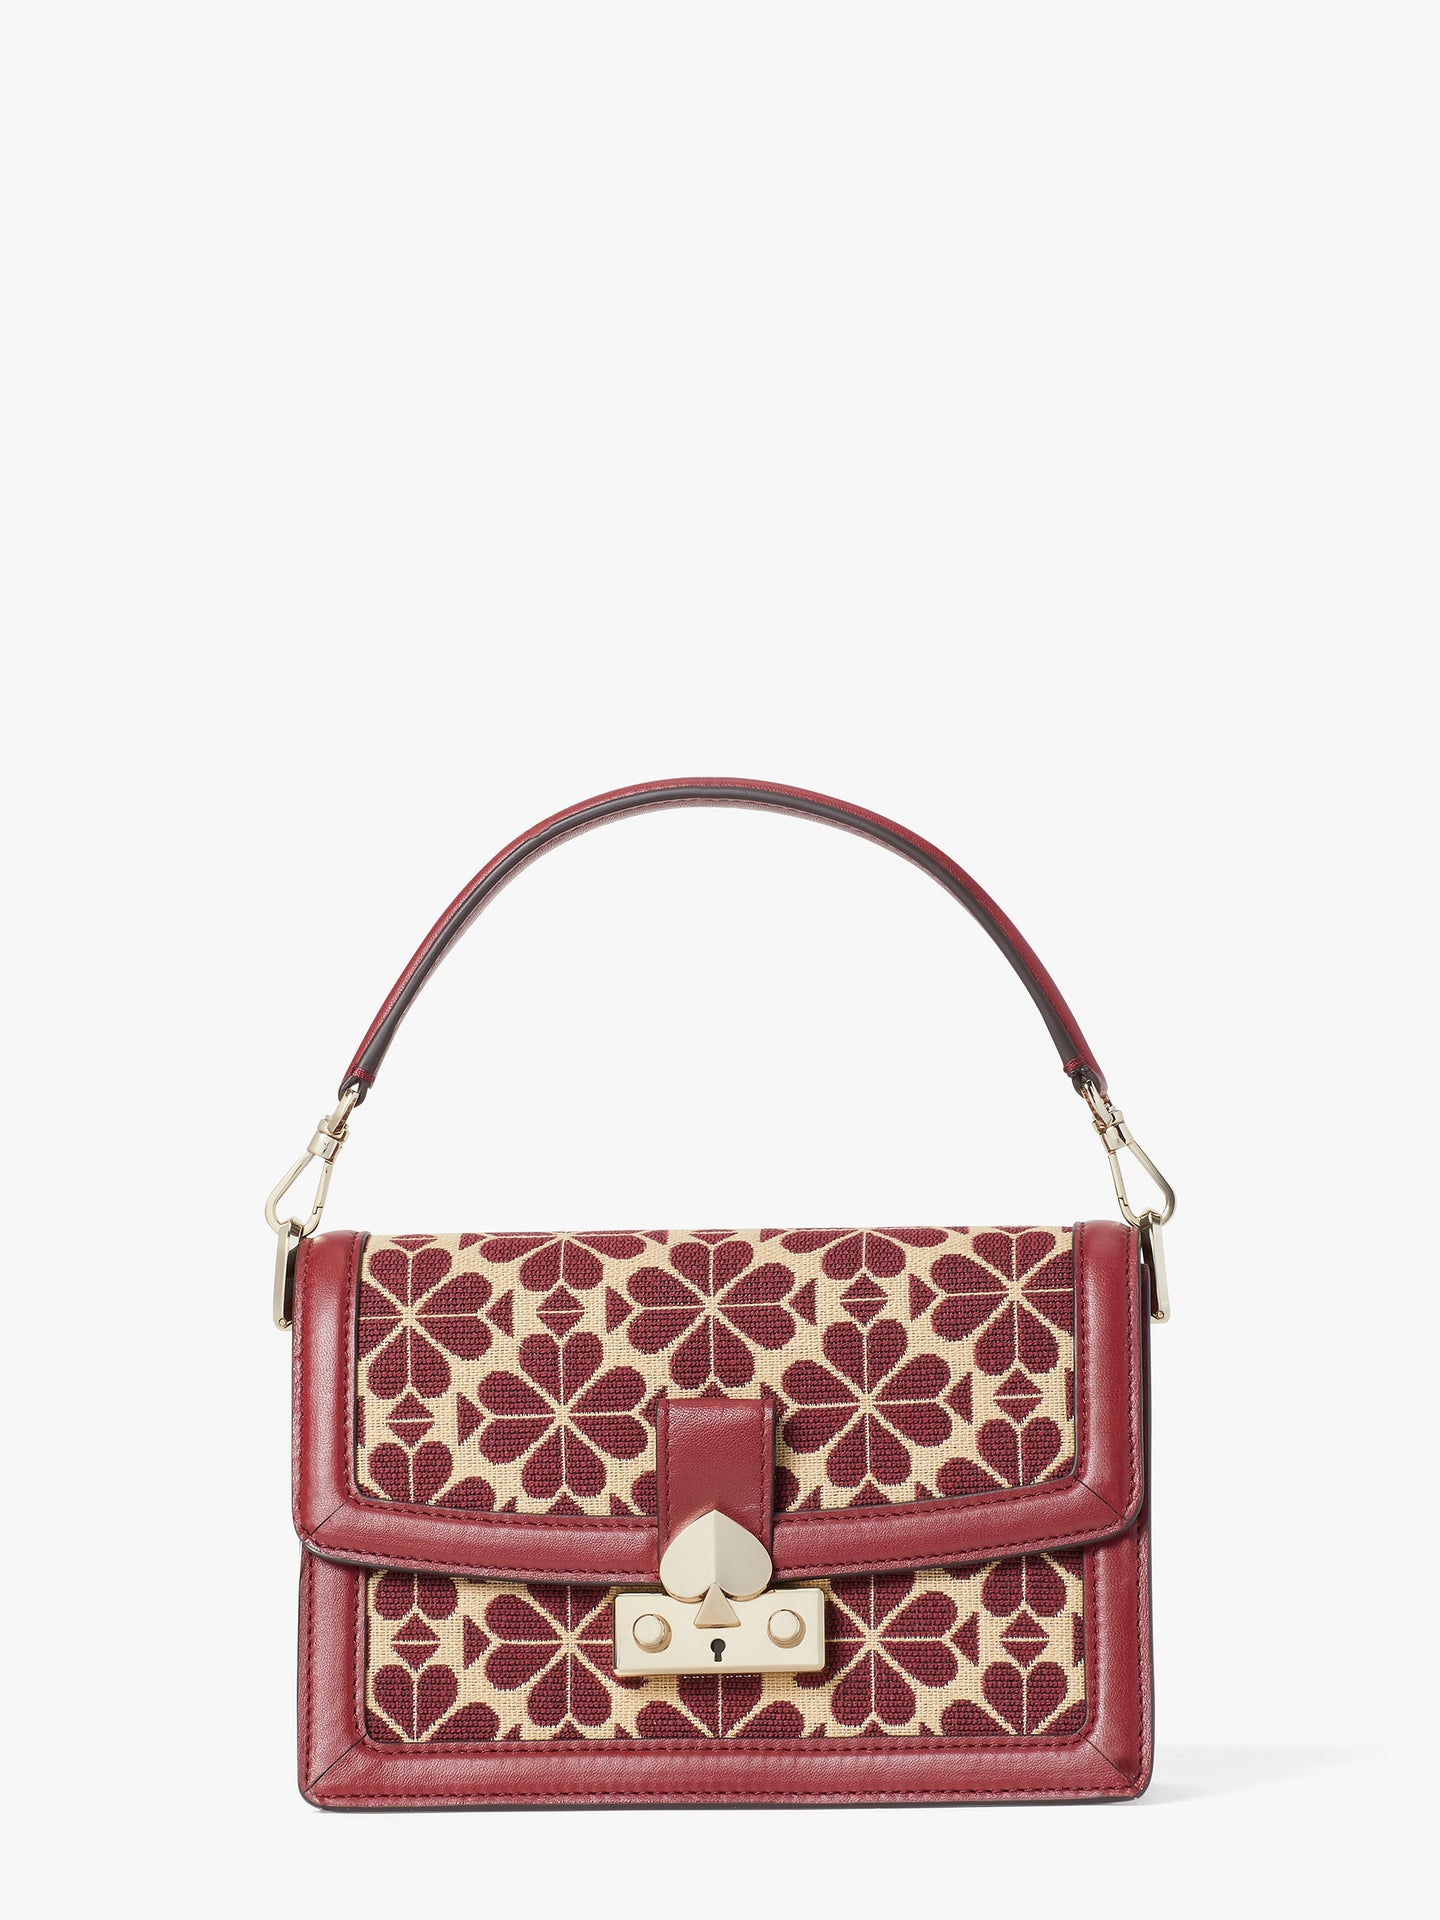 HARMONY SPADE FLOWER JACQUARD SMALL SHOULDER BAG